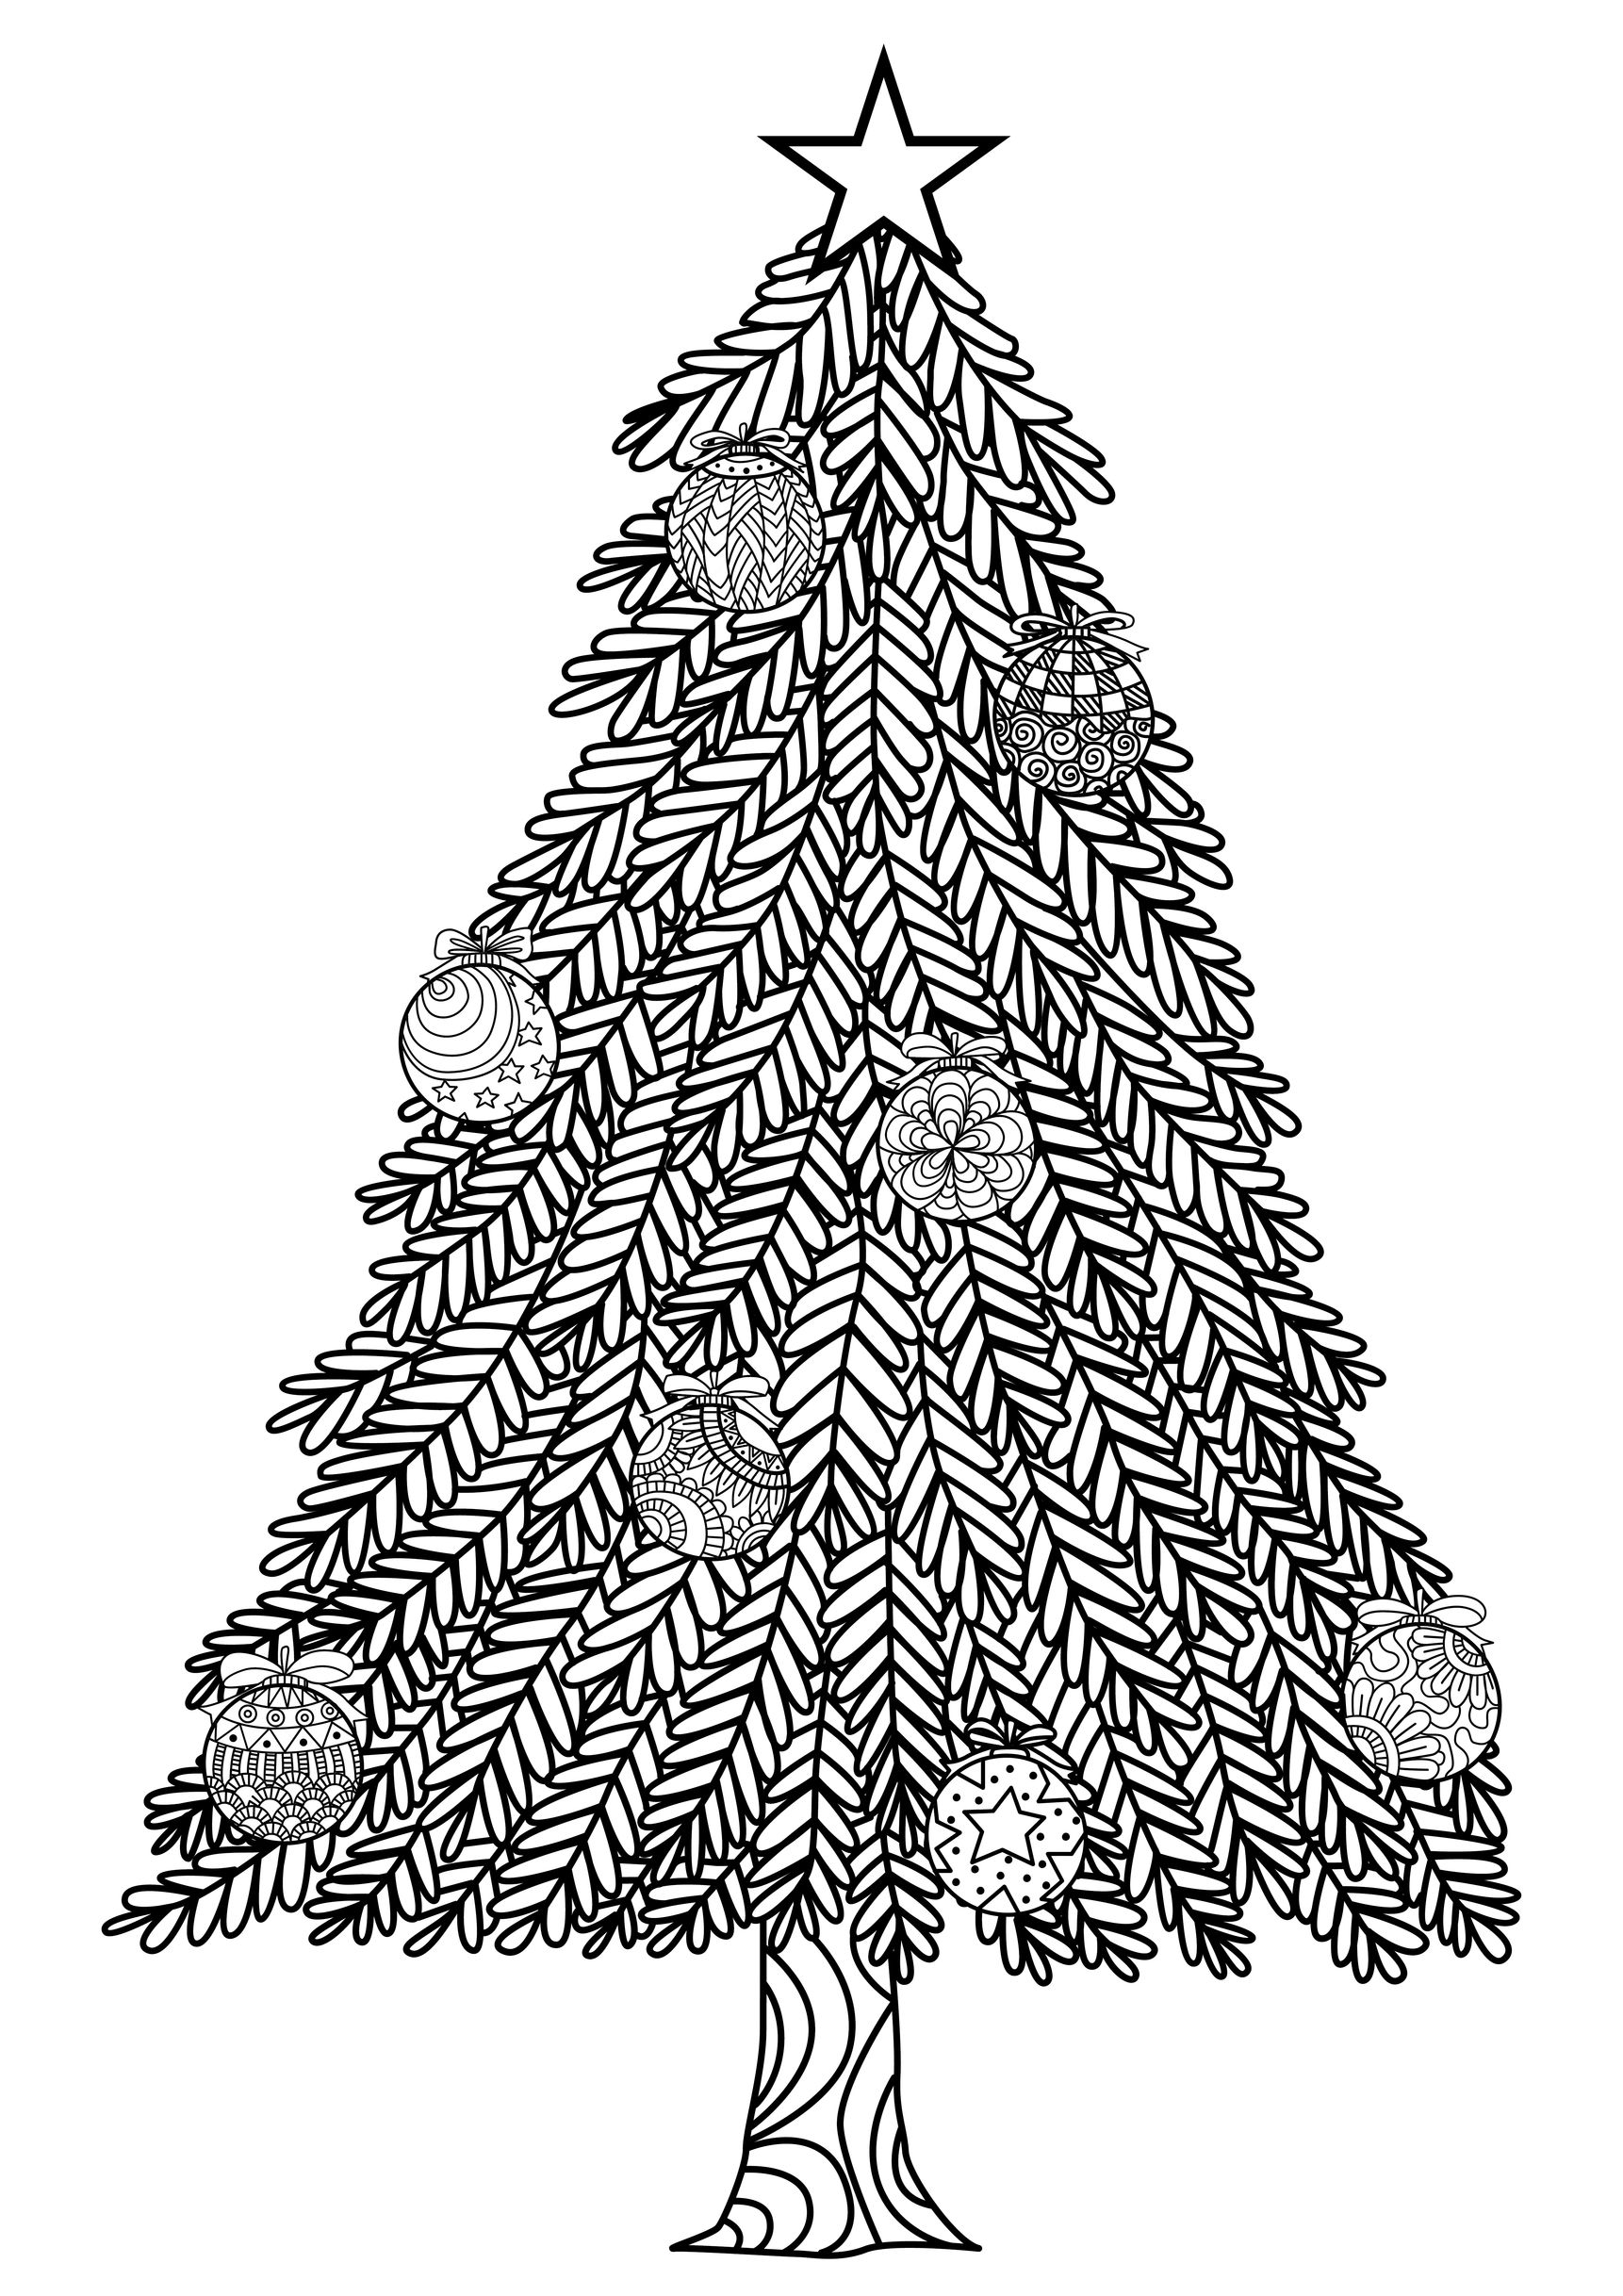 Colouring in xmas tree - Christmas Tree Zentangle Style With Christmas Balls And A Big Star In The Top From